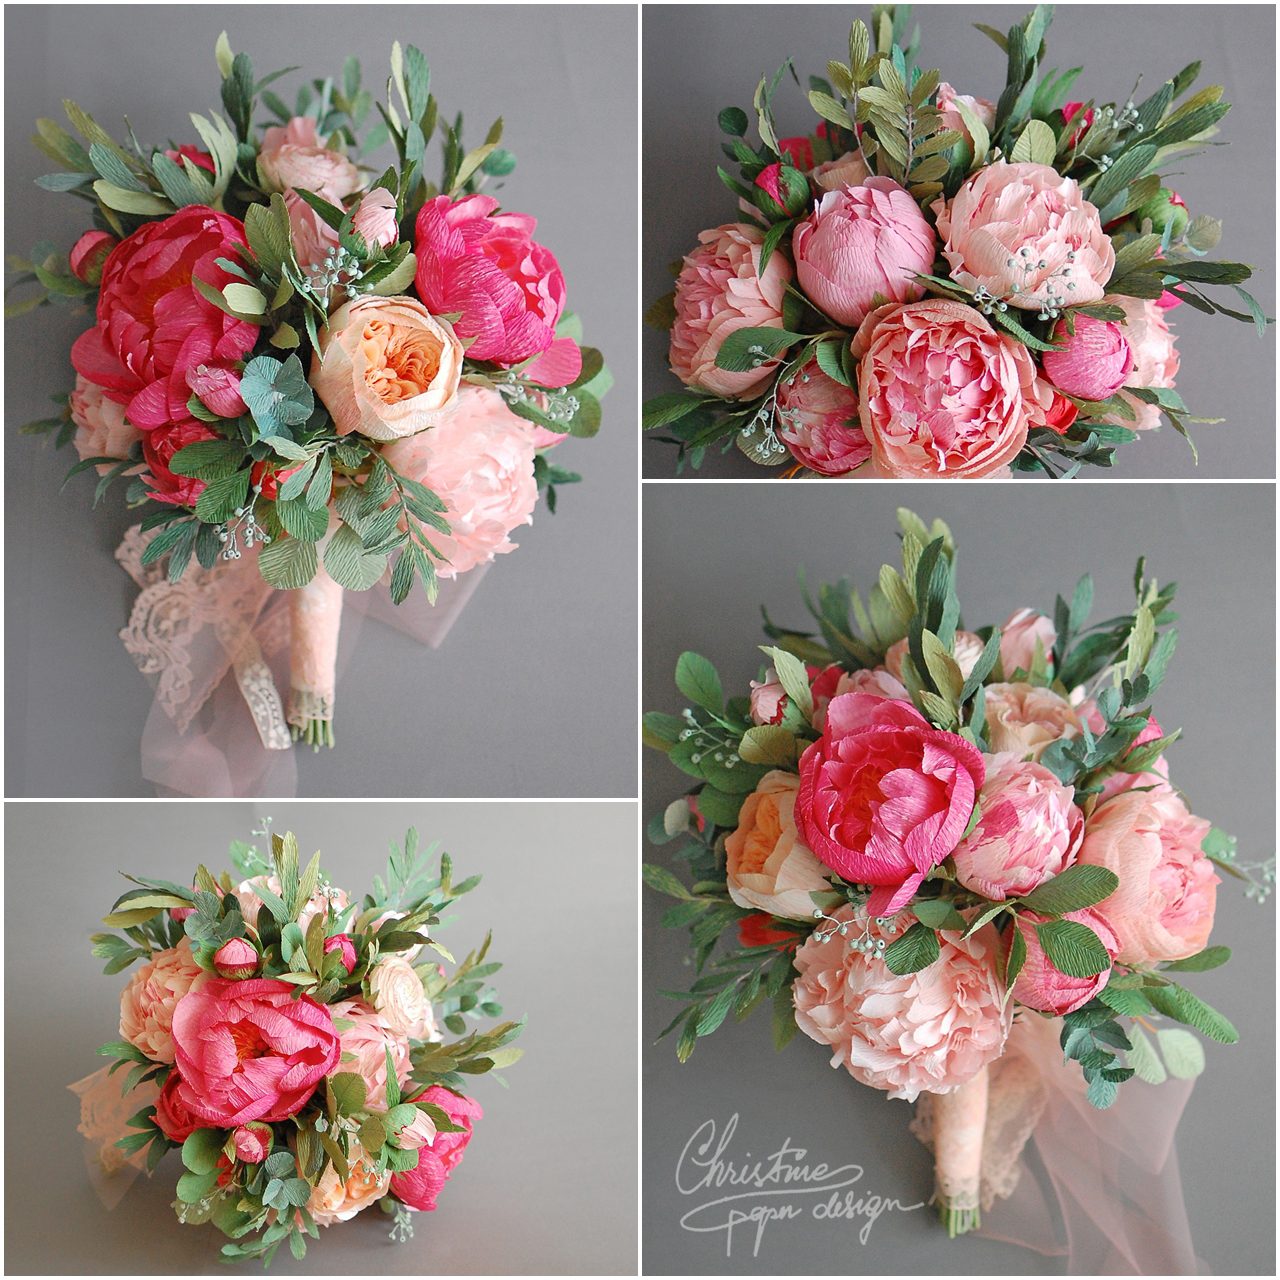 bridal bouquet with peonies - Christine paper design